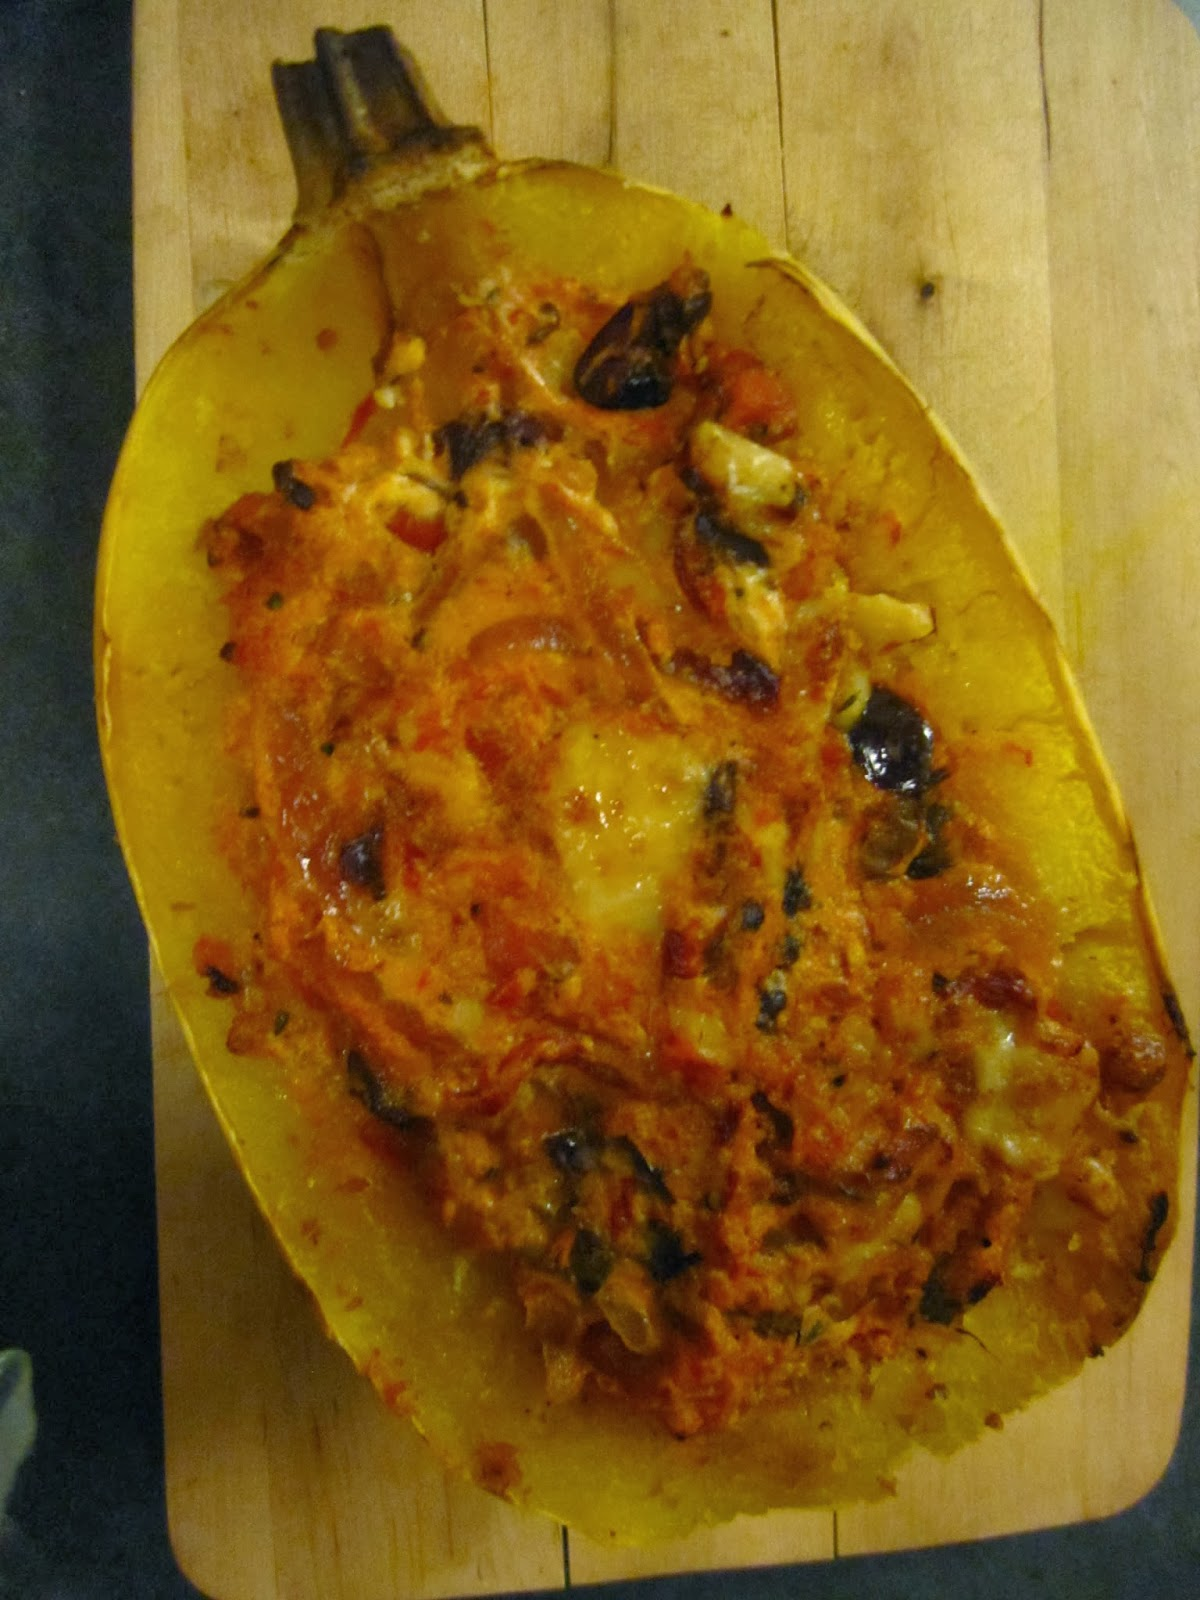 ... Spaghetti Squash (Part 2) with Roasted Peppers, Herbs, Olives and Goat